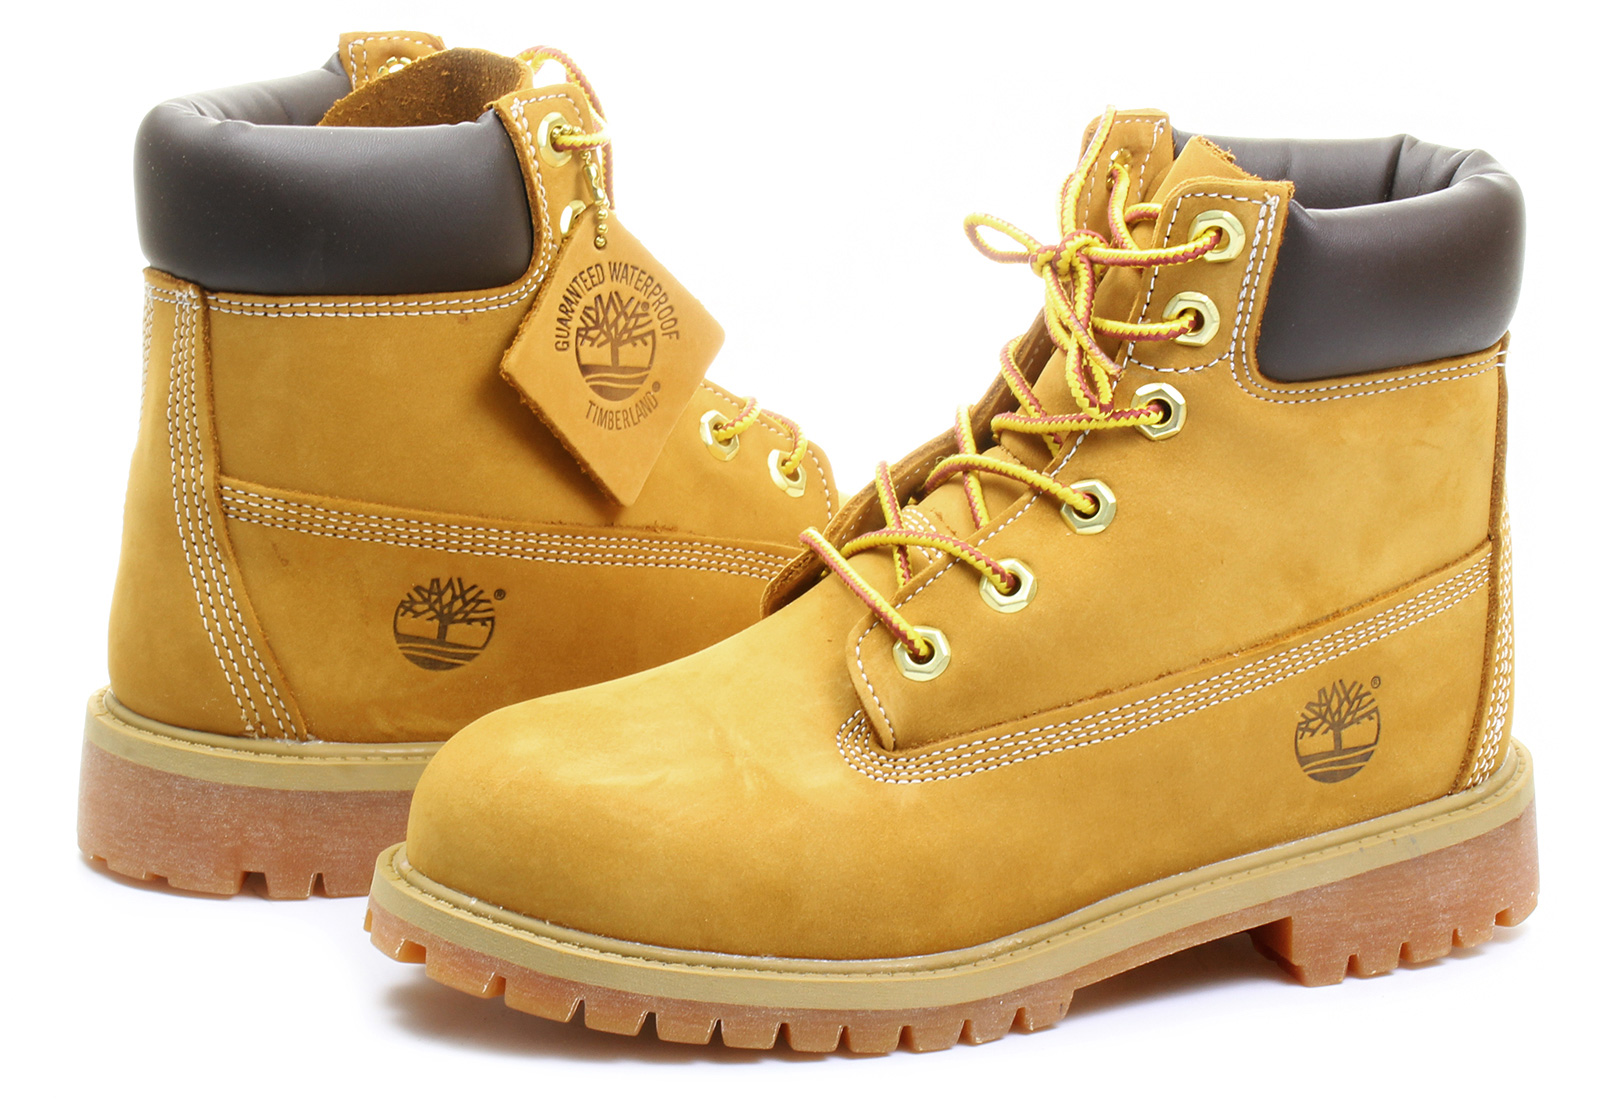 Timberland Boots - 6 Inch Premium Boot - 12709-ble - Online shop for ...